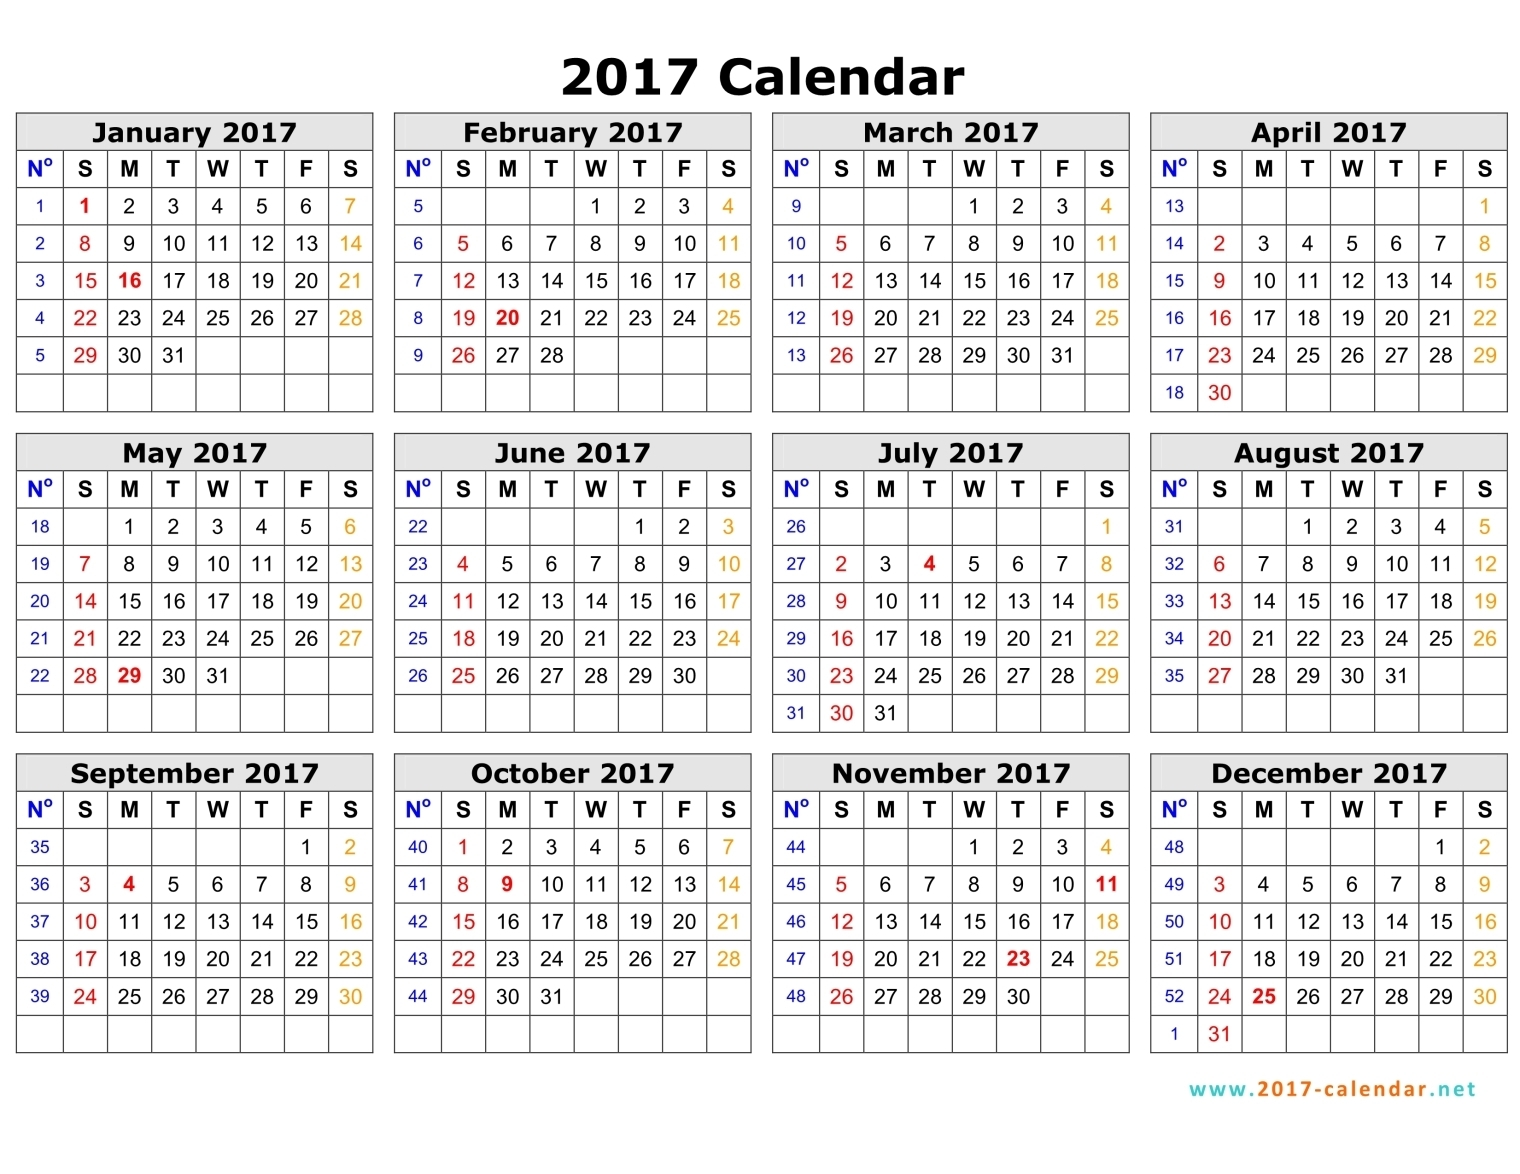 Islamic Calendar 2017 Uk | printable calendar templates